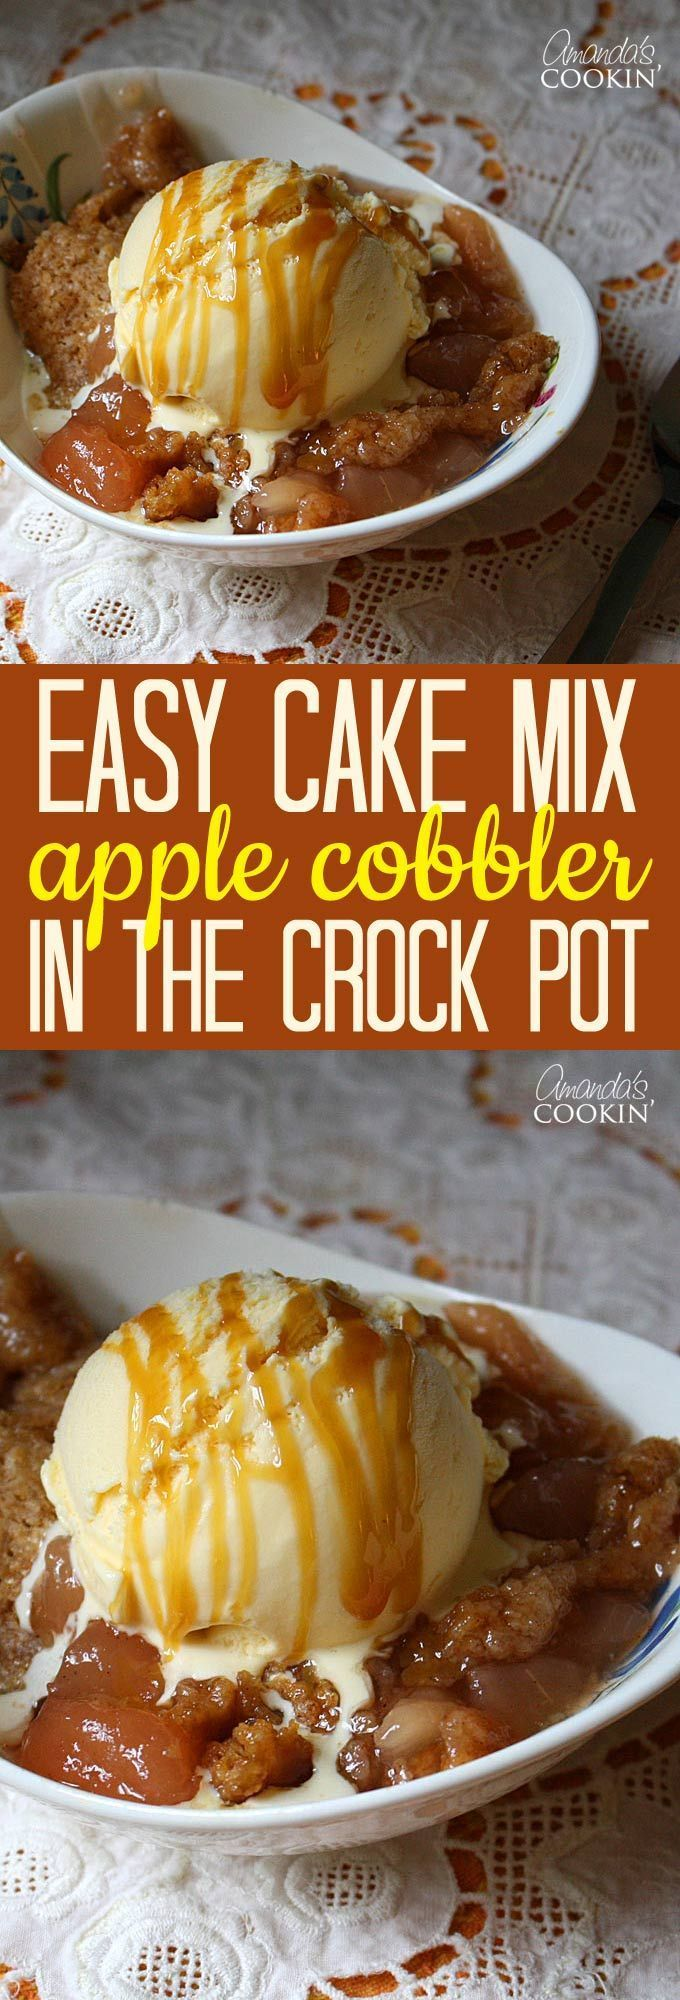 Make cake mix apple cobbler in the crock pot - nobody will guess it started with a boxed mix!